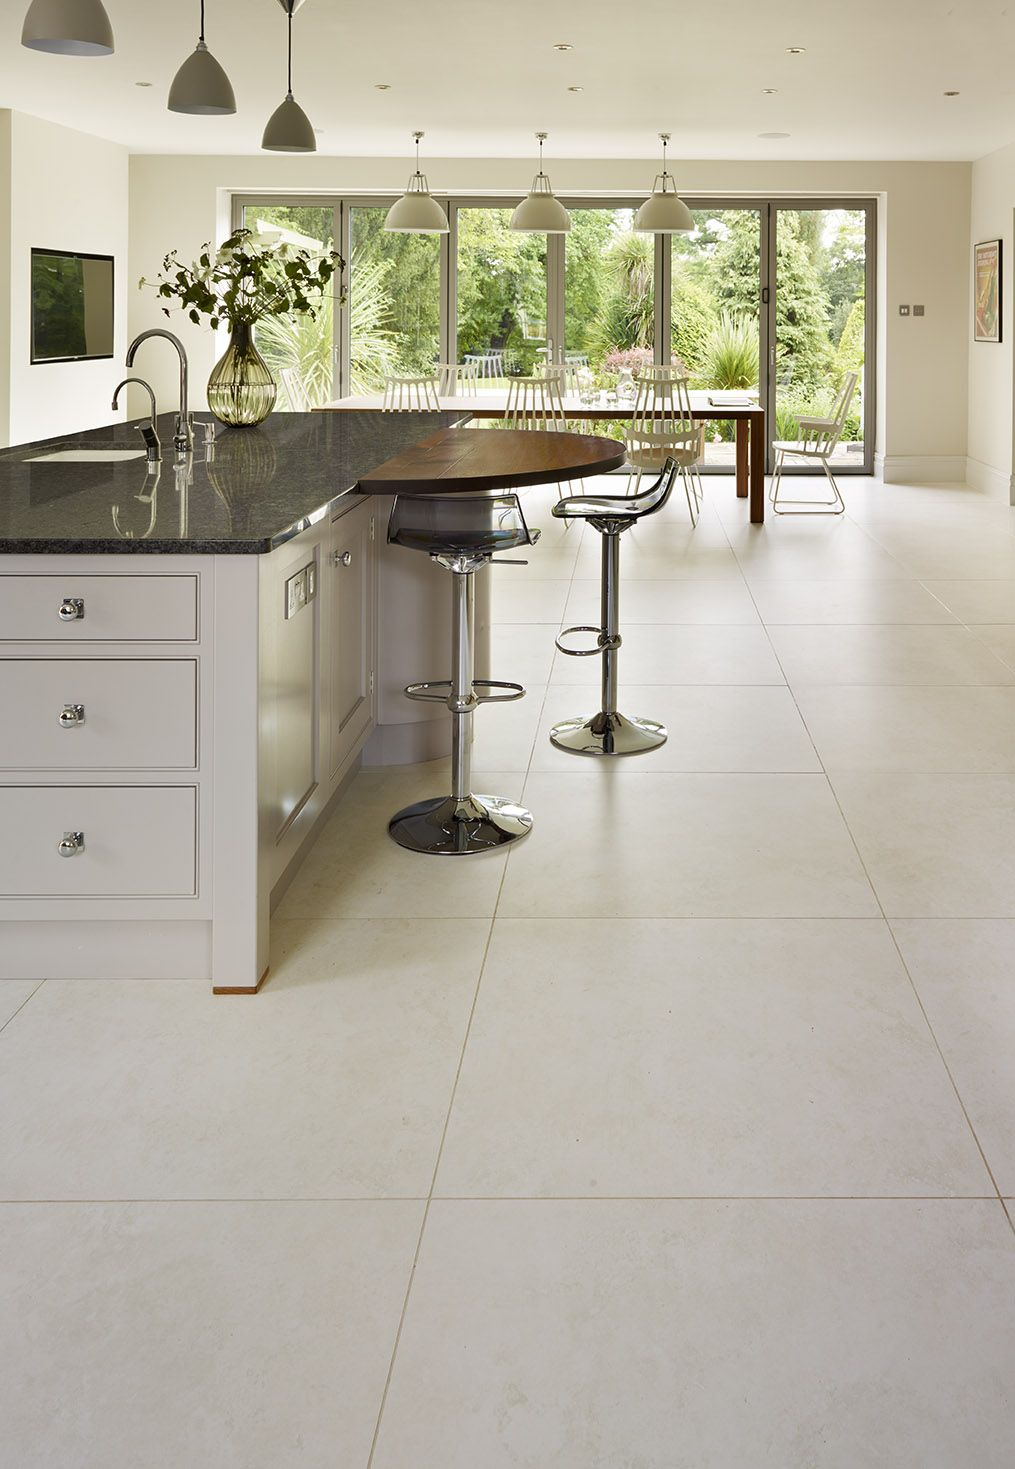 Sivas  A Crisp Contemporary Natural Stone Floor  Kitchen Floors Unique Stone Floor Kitchen Inspiration Design